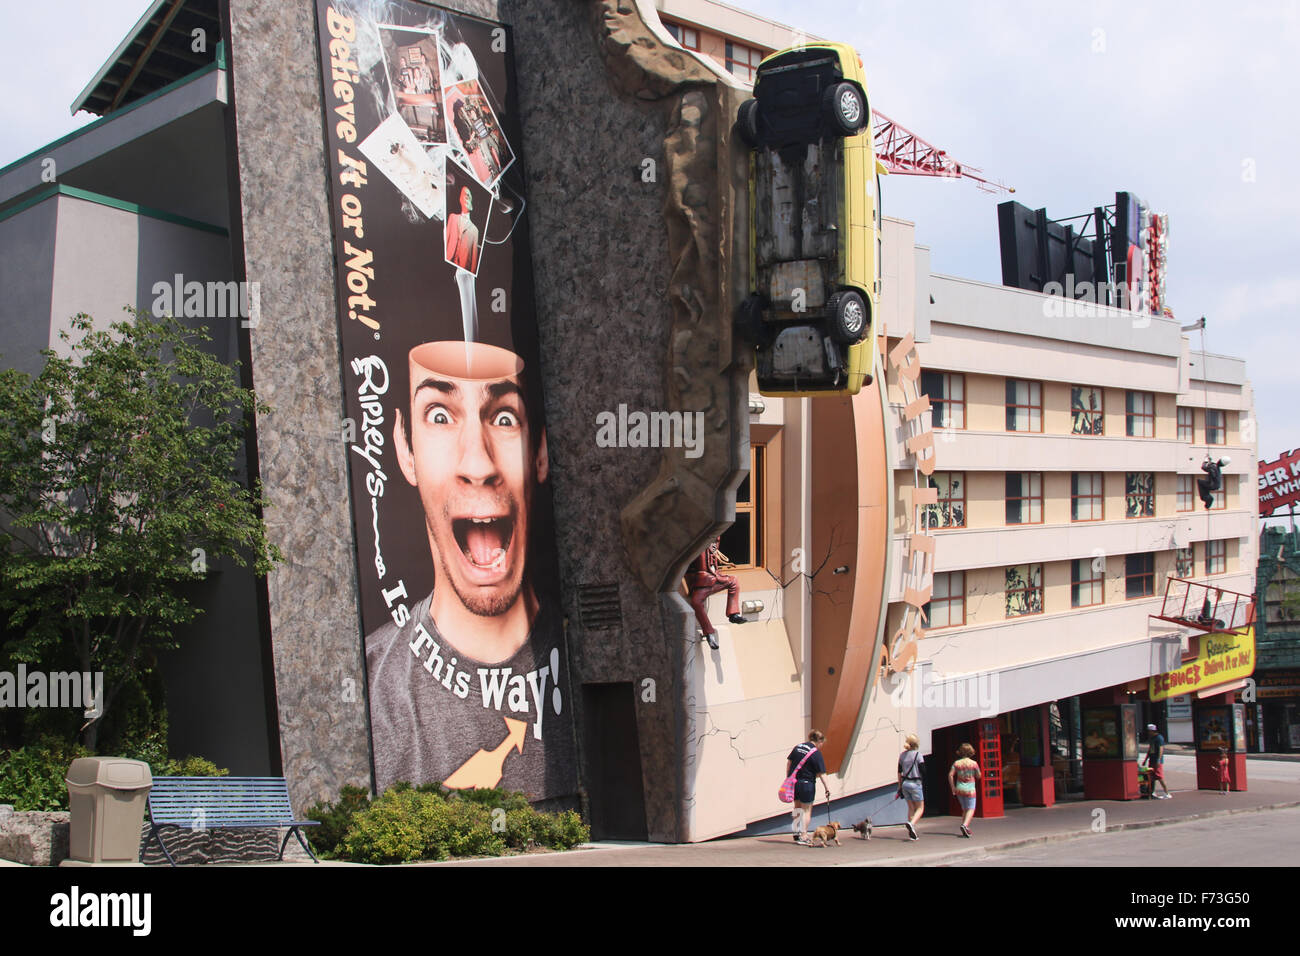 Ripley's Believe It Or Not building. Clifton Hill tourist area, Niagara Falls, Ontario, Canada. - Stock Image